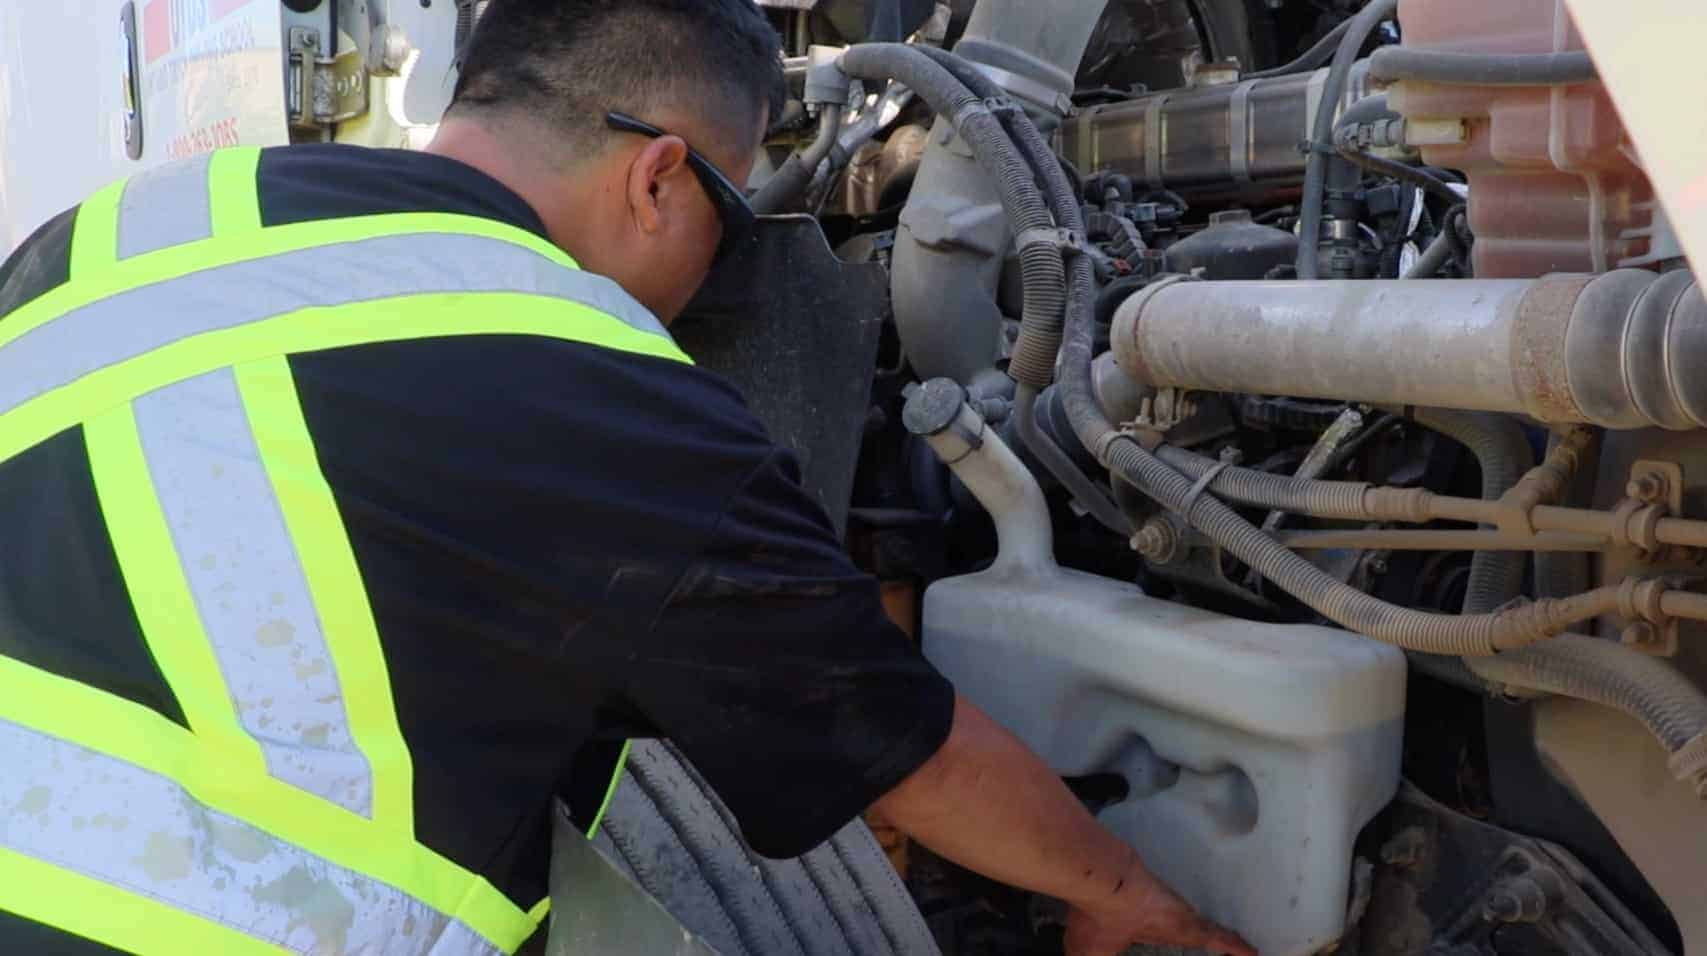 Truck inspections